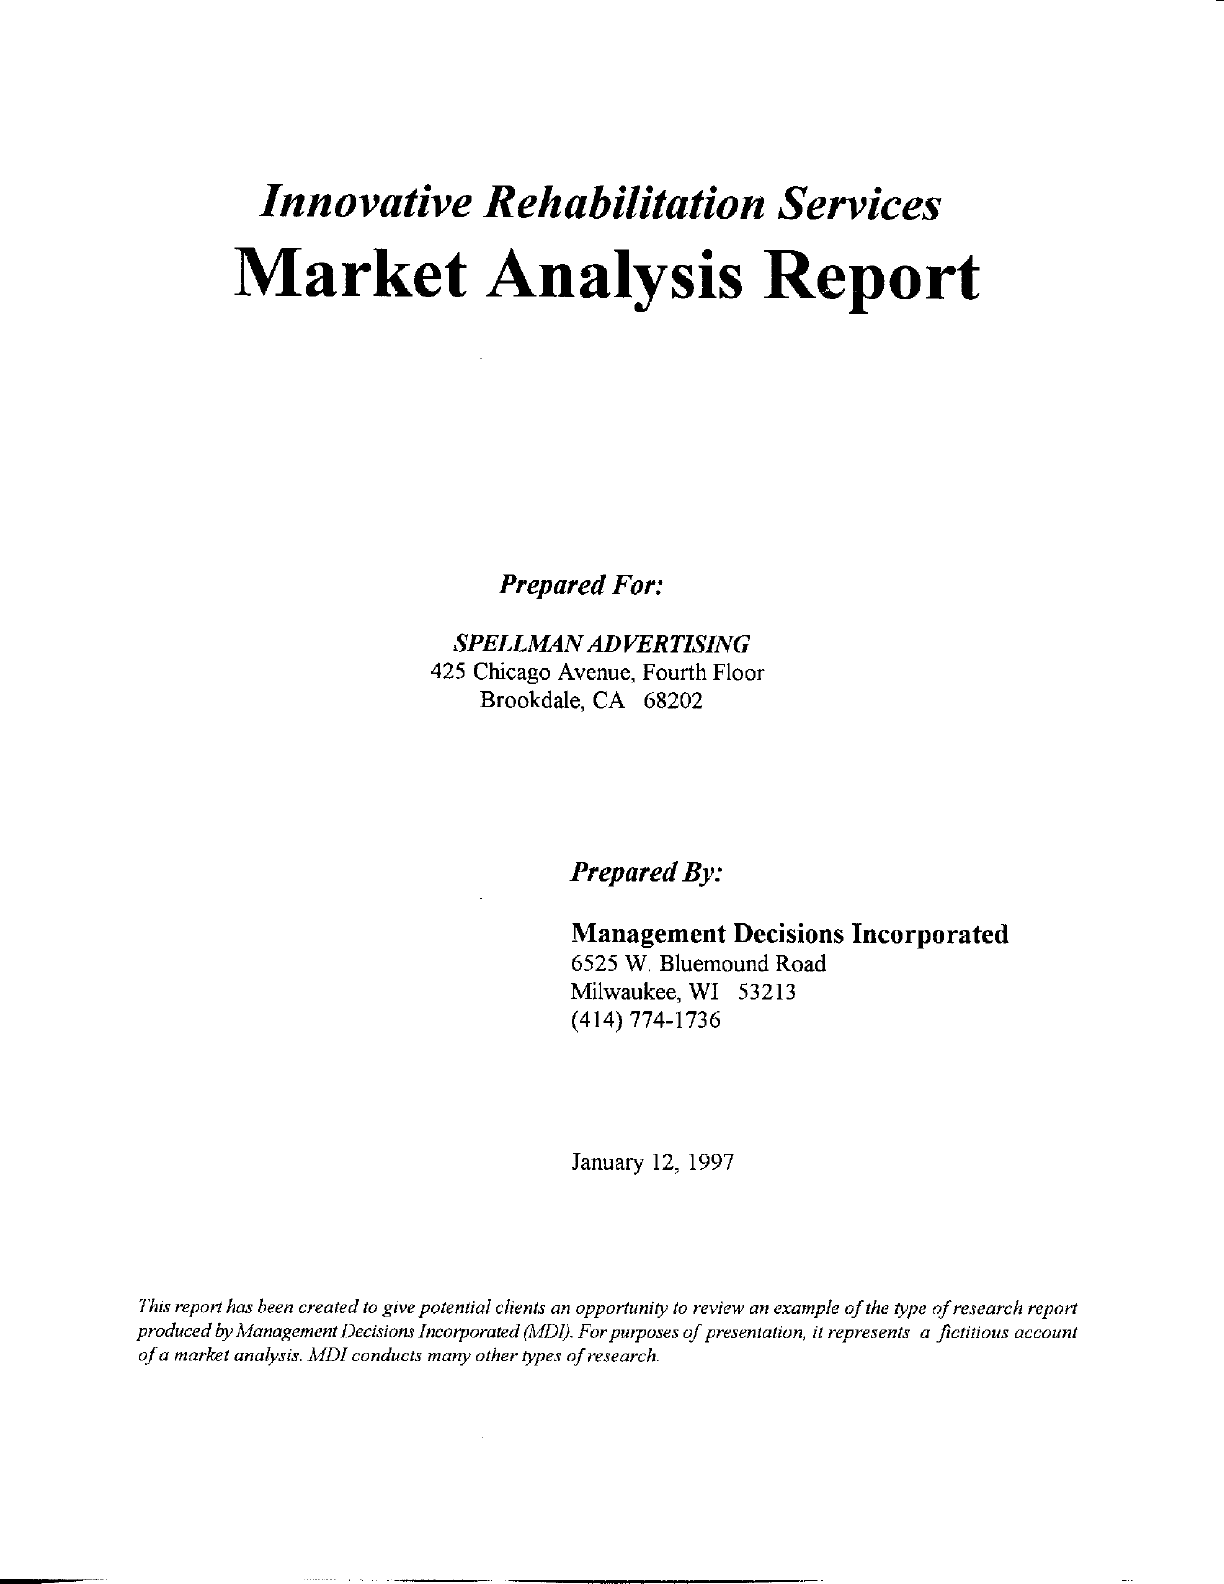 report analysis template – Report Analysis Template